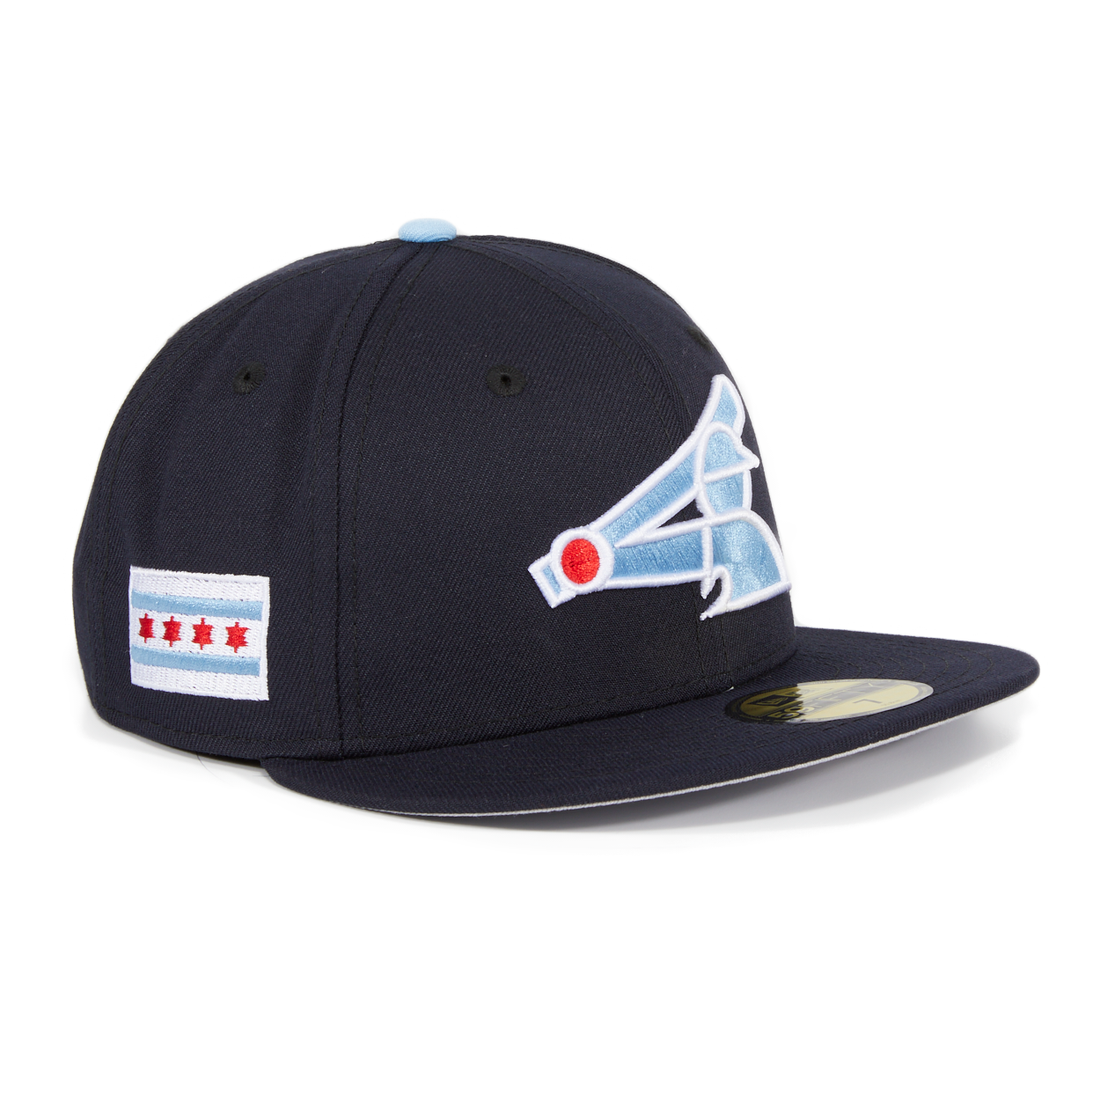 online store f2925 5fcfc ... promo code for exclusive new era 59fifty chicago white sox city flag  patch hat navy 8803c